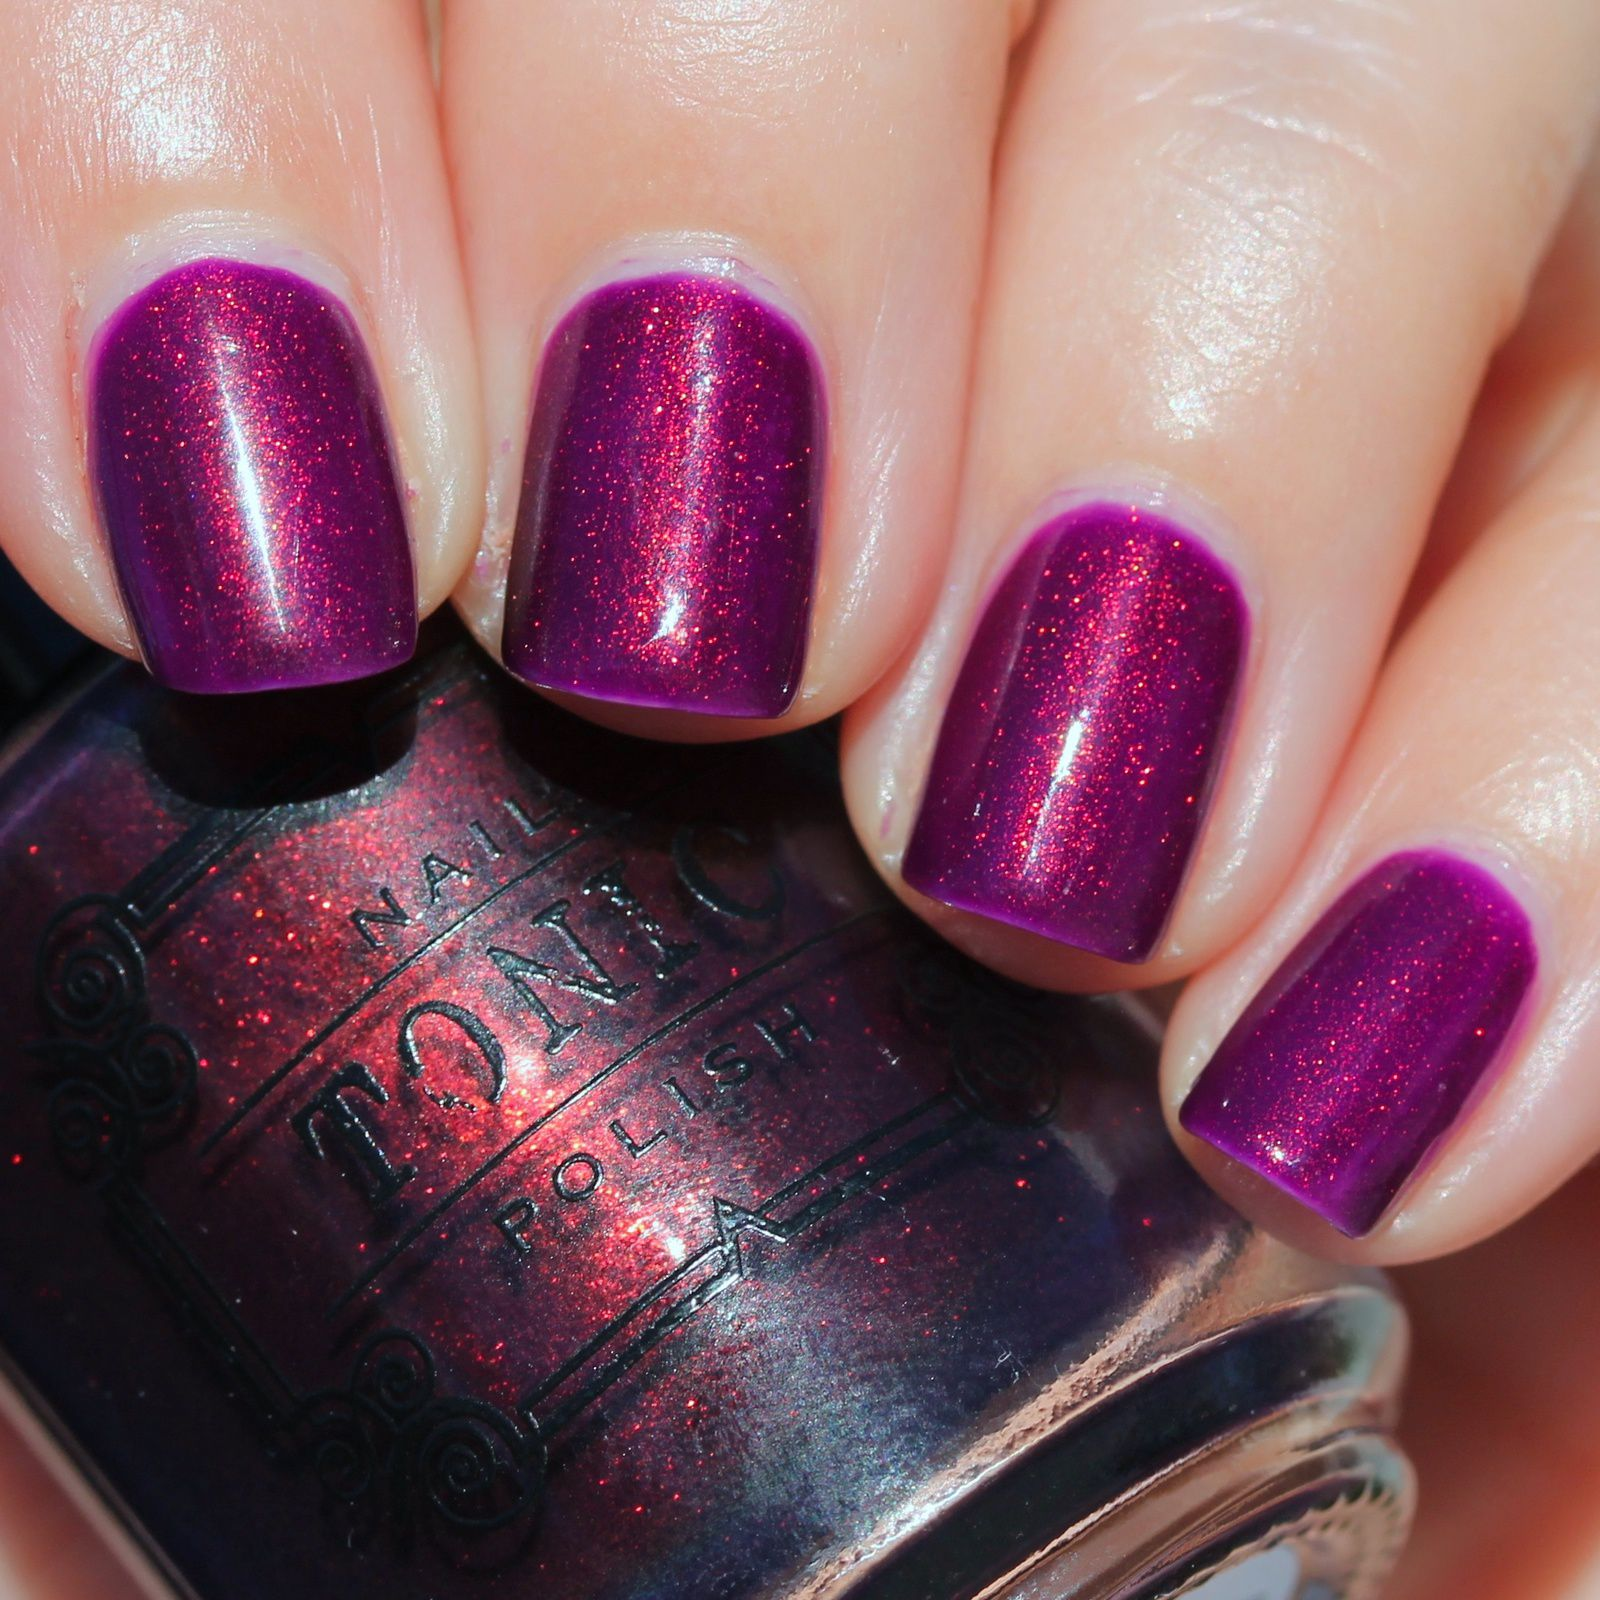 Essie Protein Base Coat / Essence Break Through / Tonic Polish Serendipity / HK Girl Top Coat